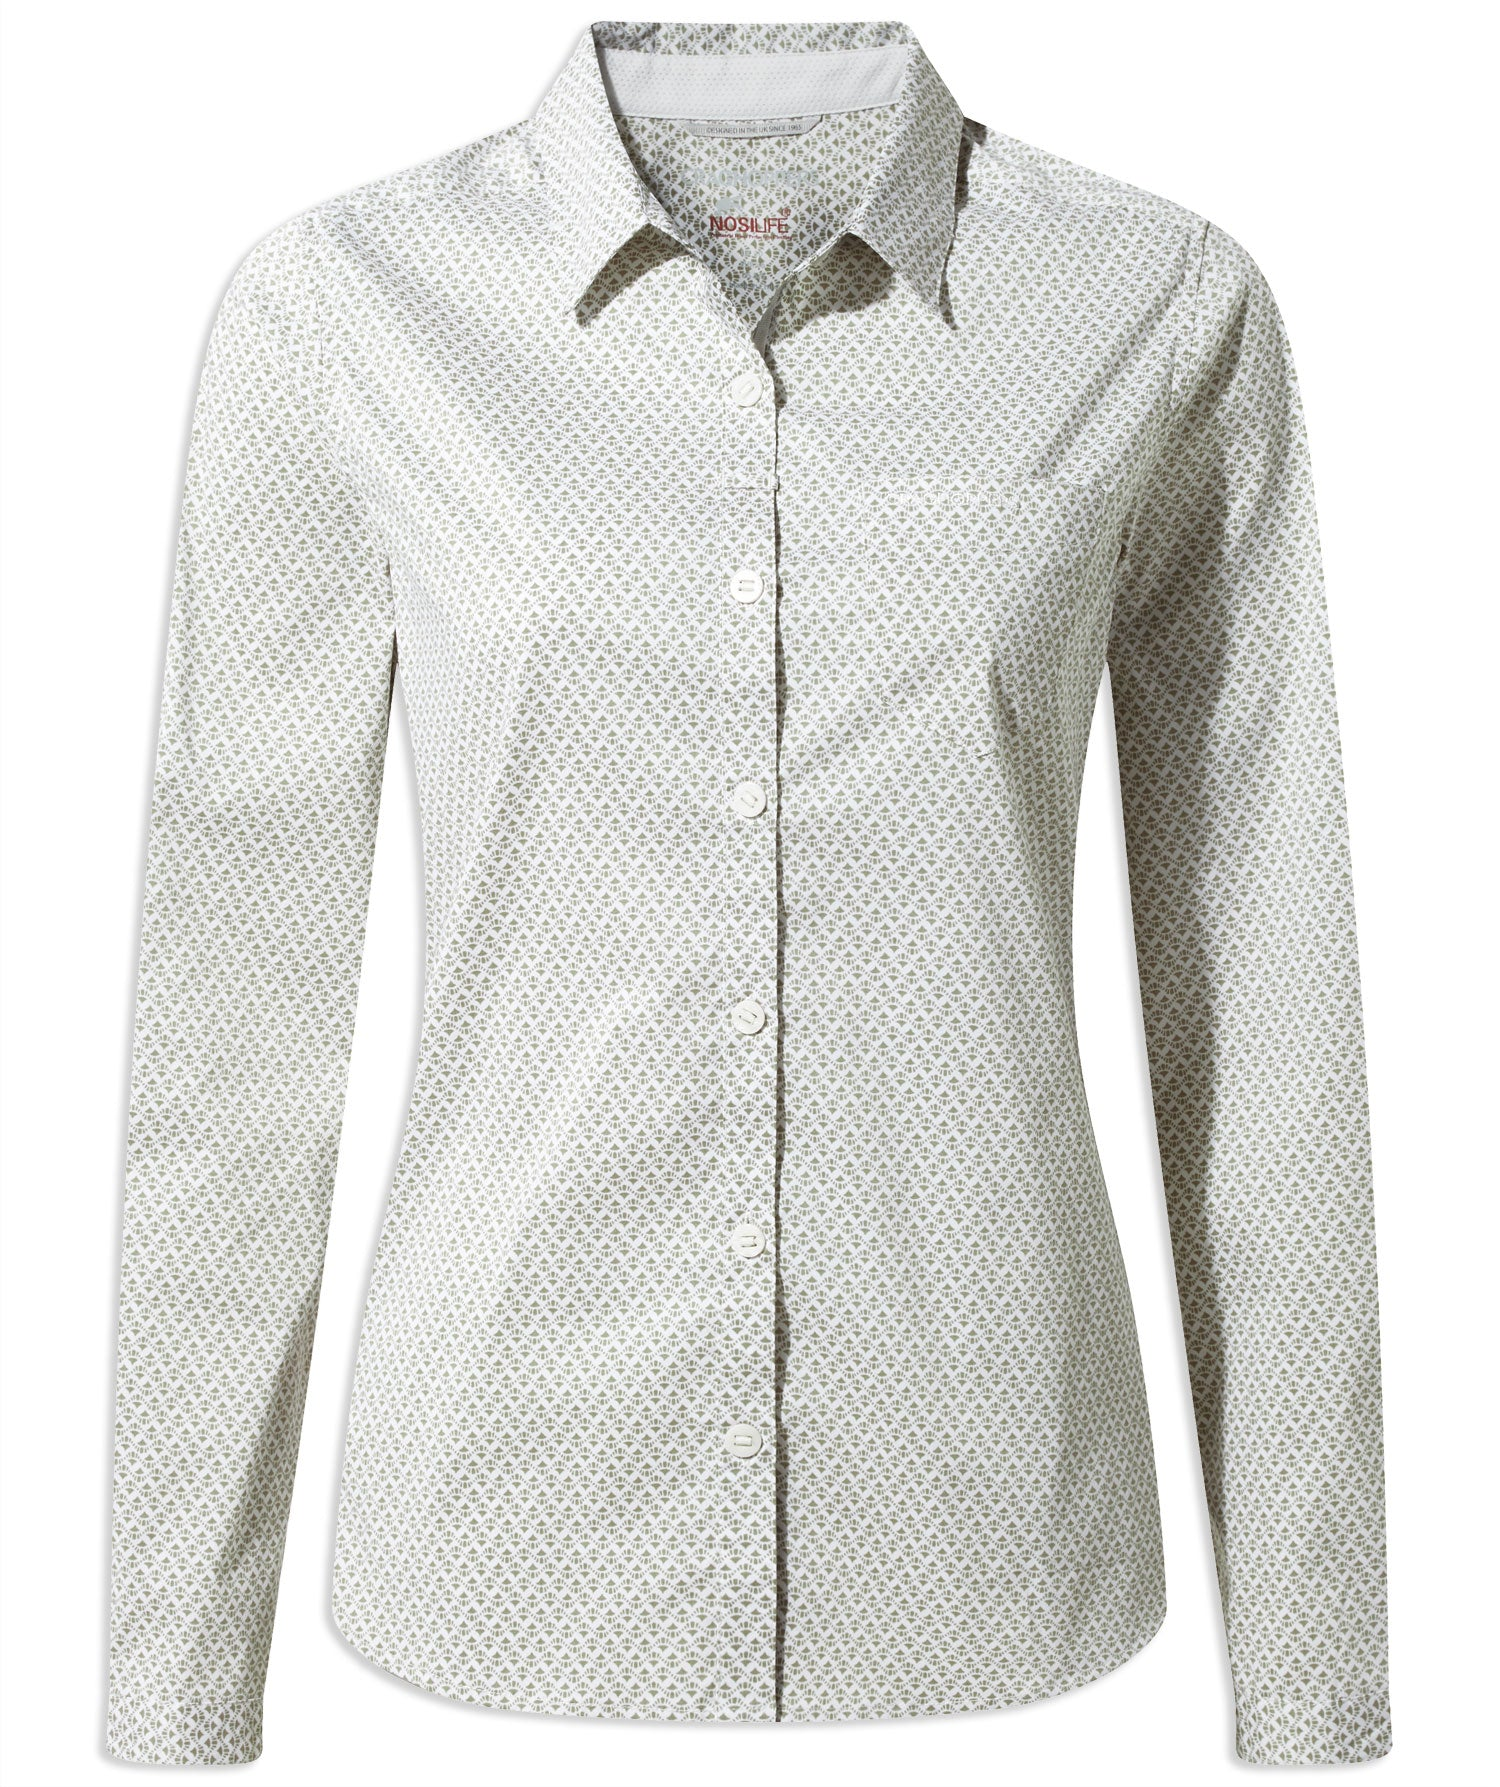 Bush Green Craghoppers NosiLife Verona Long Sleeve Shirt